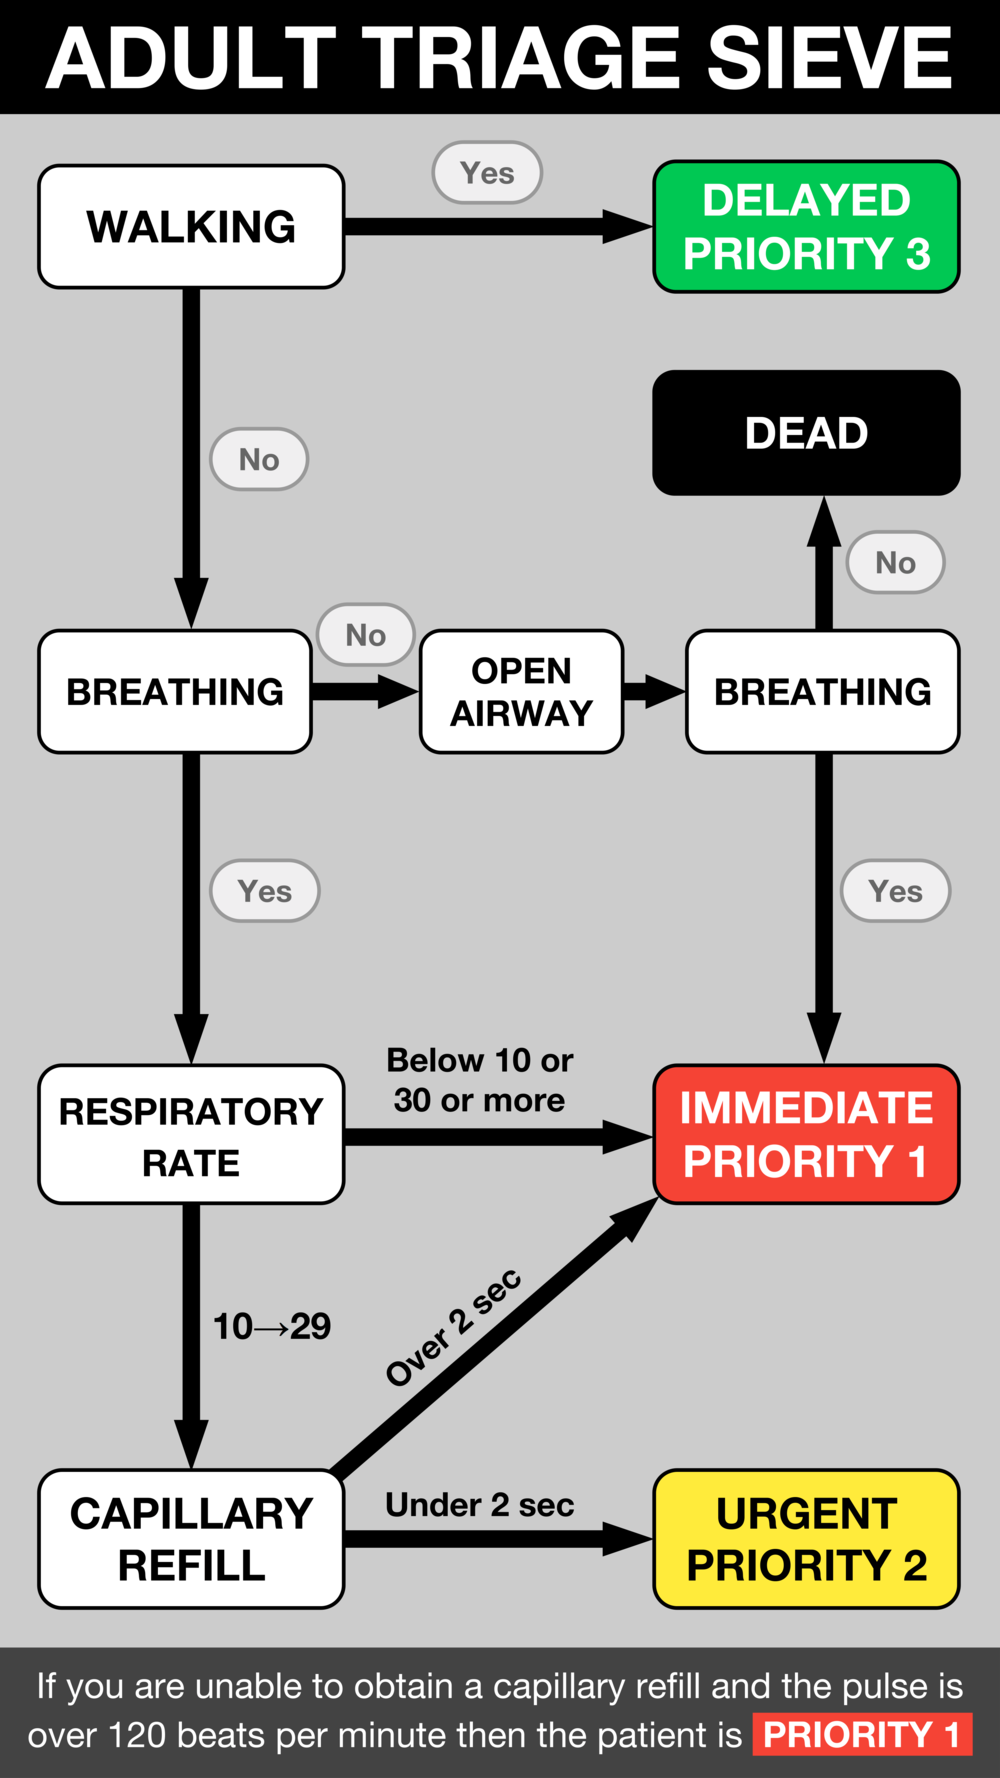 Triage Sieve (flowchart).png